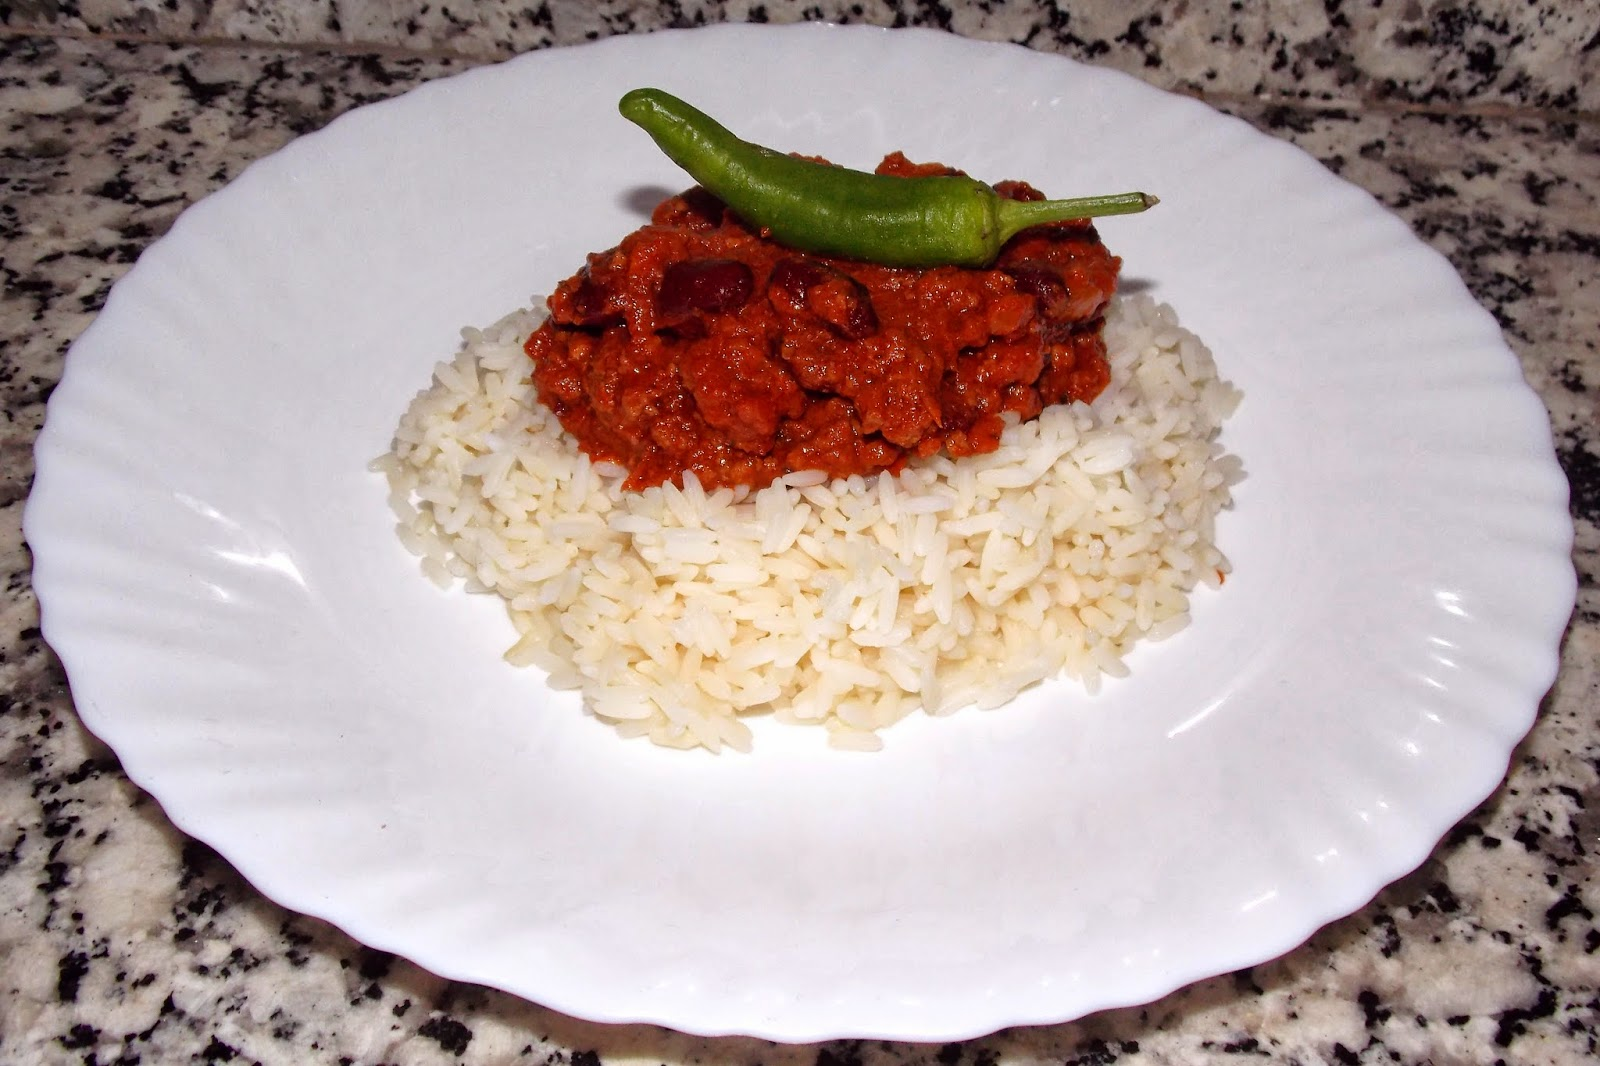 life, How to Cook Chilli Con Carne, Chilli Con Carne from Scratch, What Ingredients do I need for Chilli, Fluffy Rice, Chocolate and Chilli, Easy Chilli Con Carne Recipe,